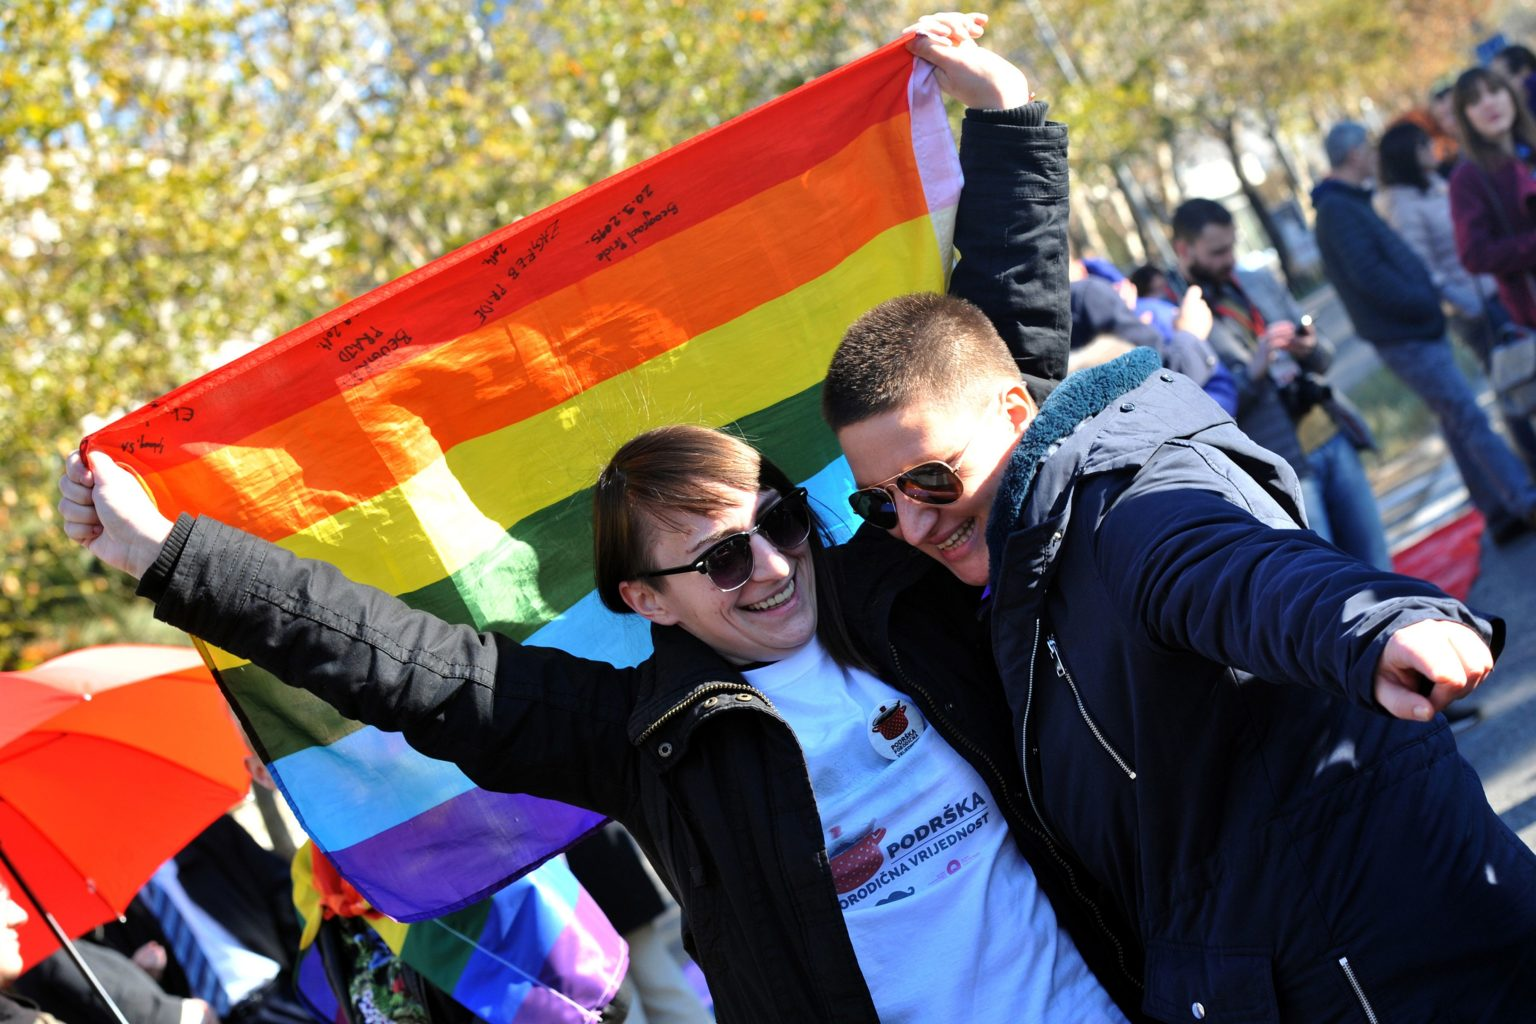 Montenegro: Tiny Balkan country just legalised same-sex